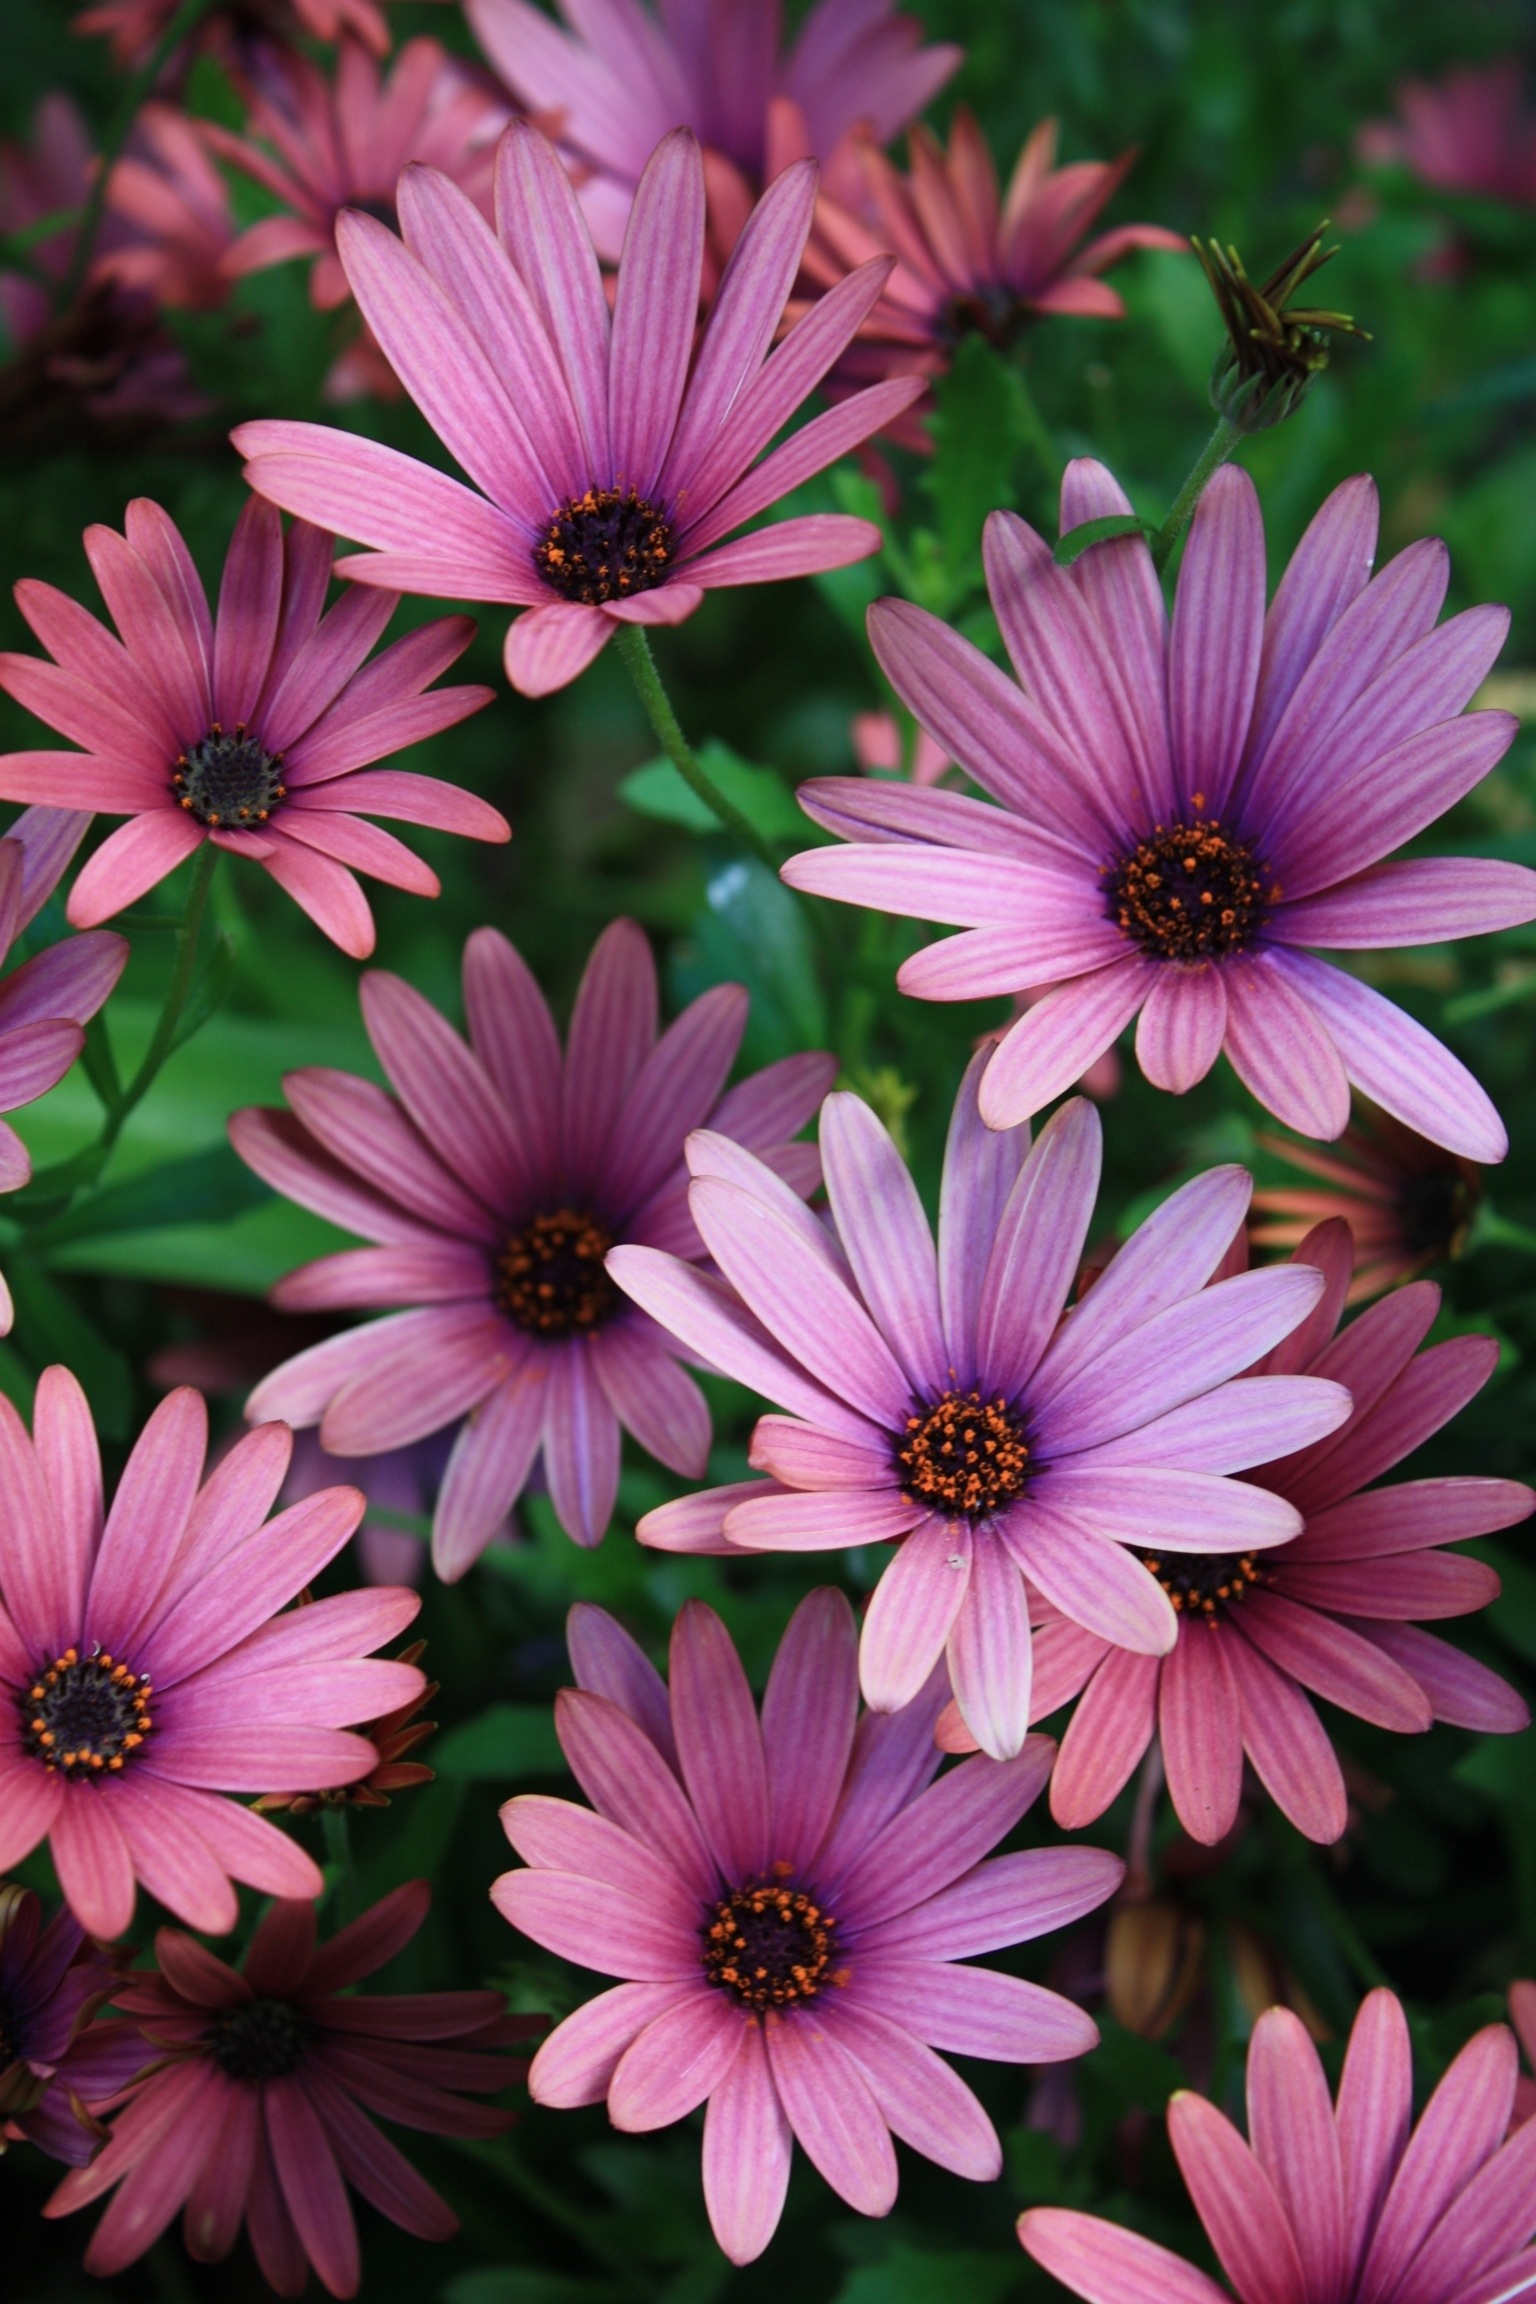 Daily flower candy osteospermum nuanza copper purple the 20130625 230118g izmirmasajfo